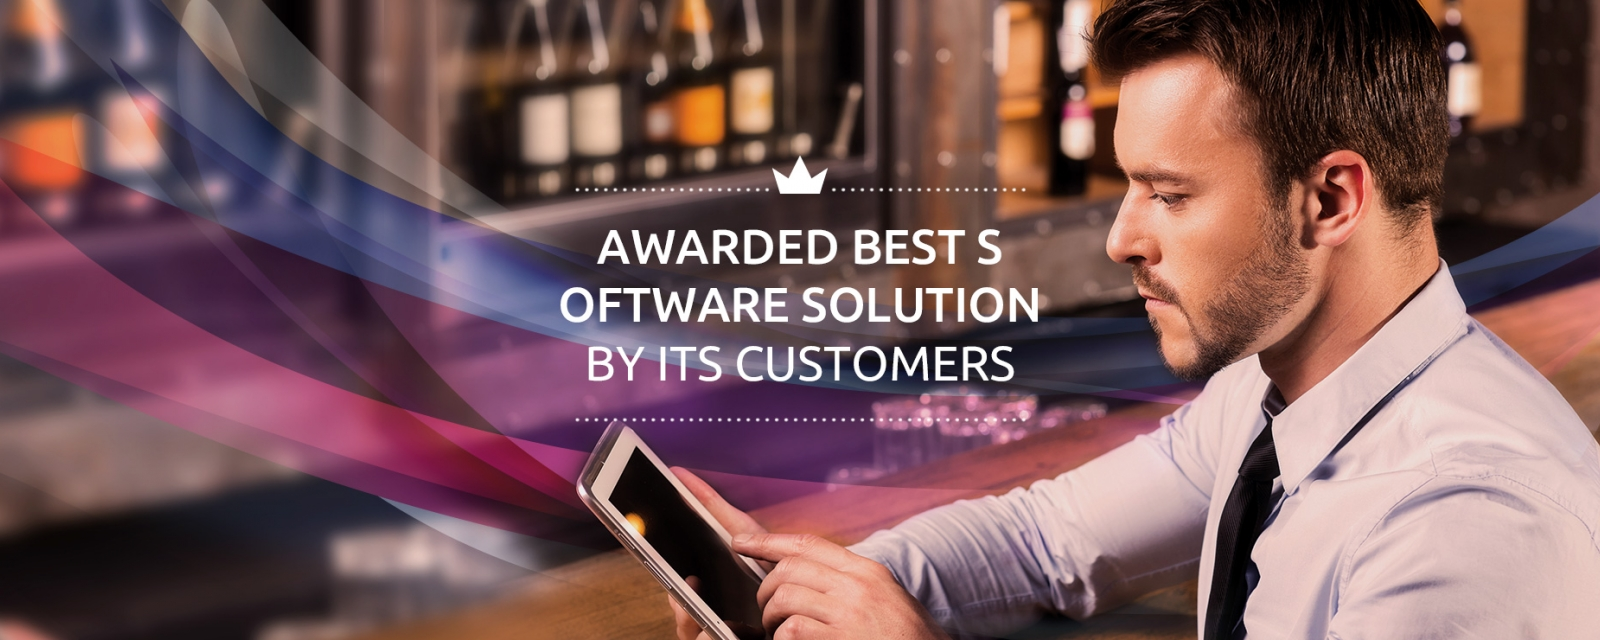 AWARDED BEST SOFTWARE SOLUTION BY ITS CUSTOMERS